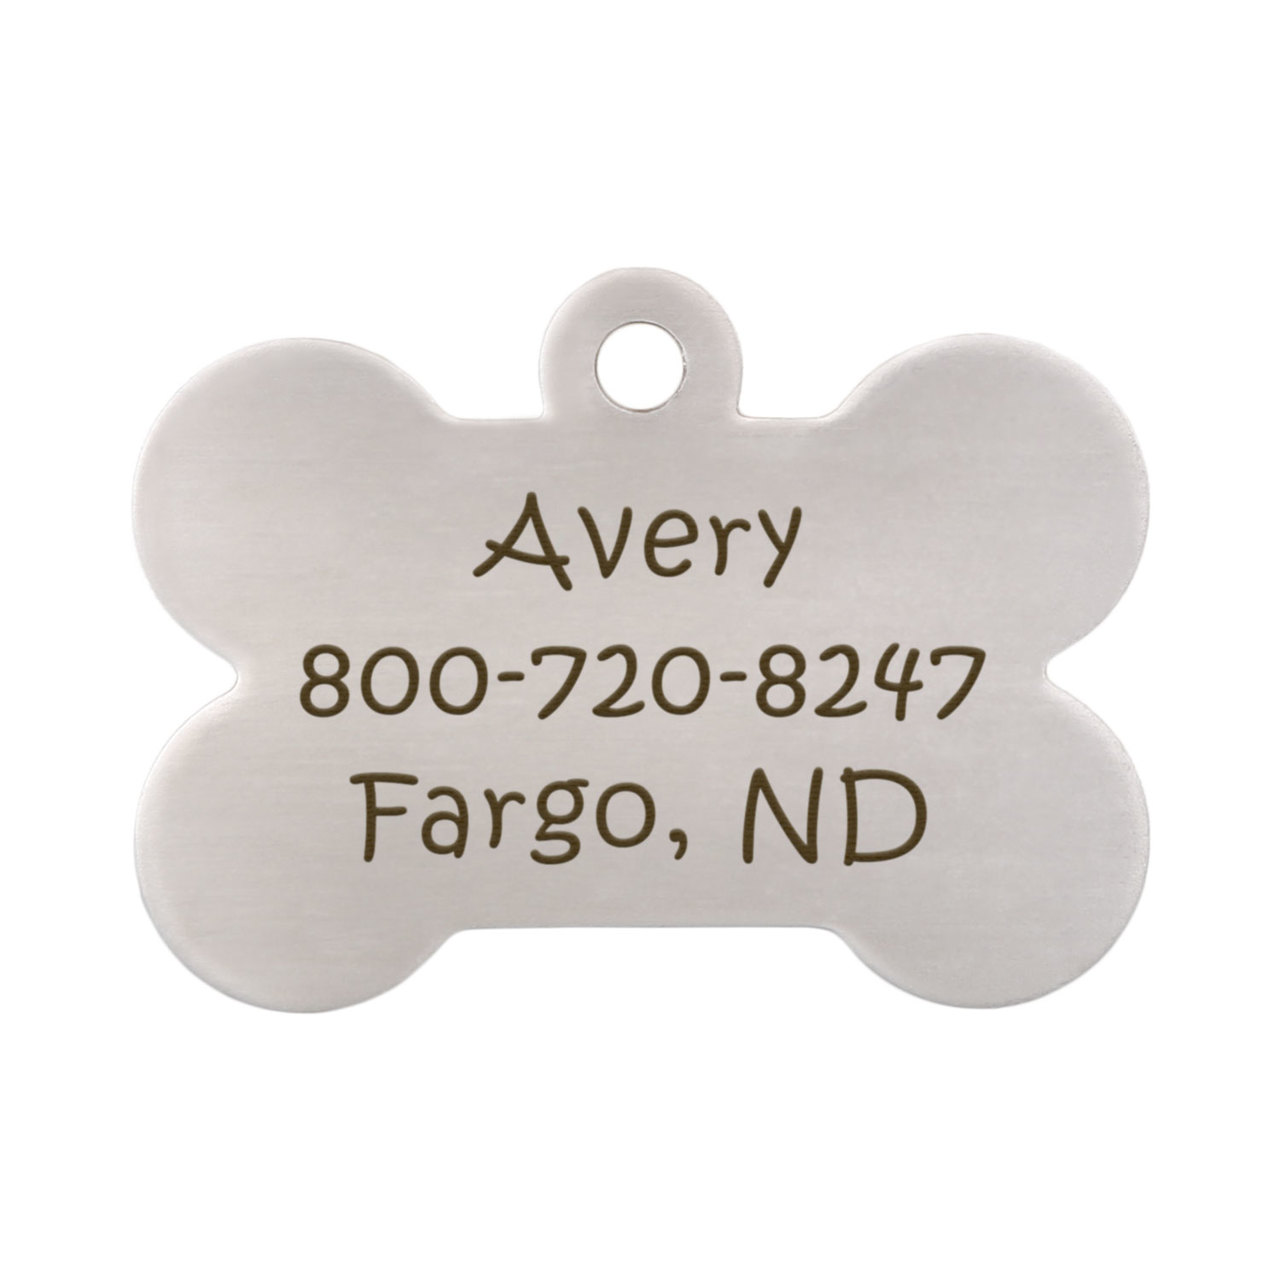 Mustache Design Dog Tags - Engraving on Stainless Steel